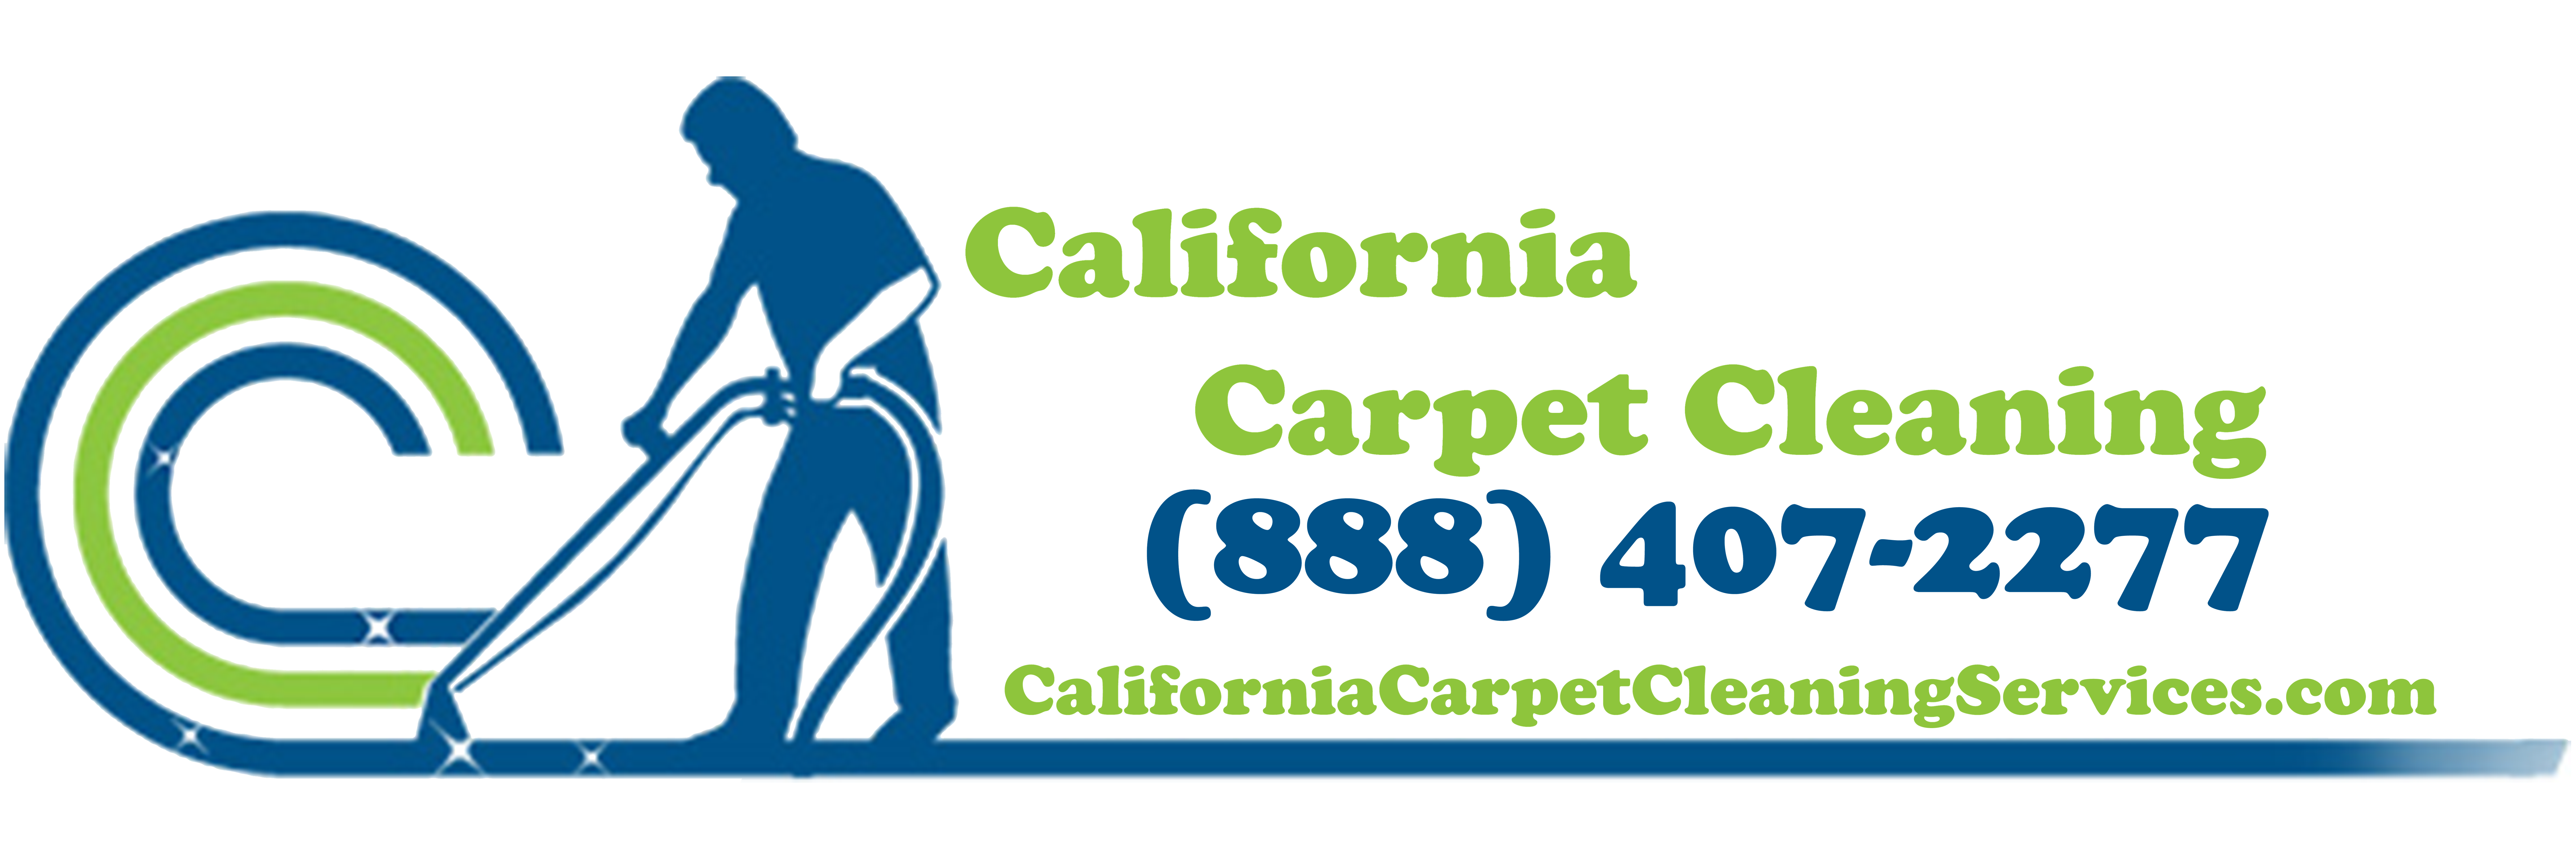 CA Carpet Cleaning Services Logo